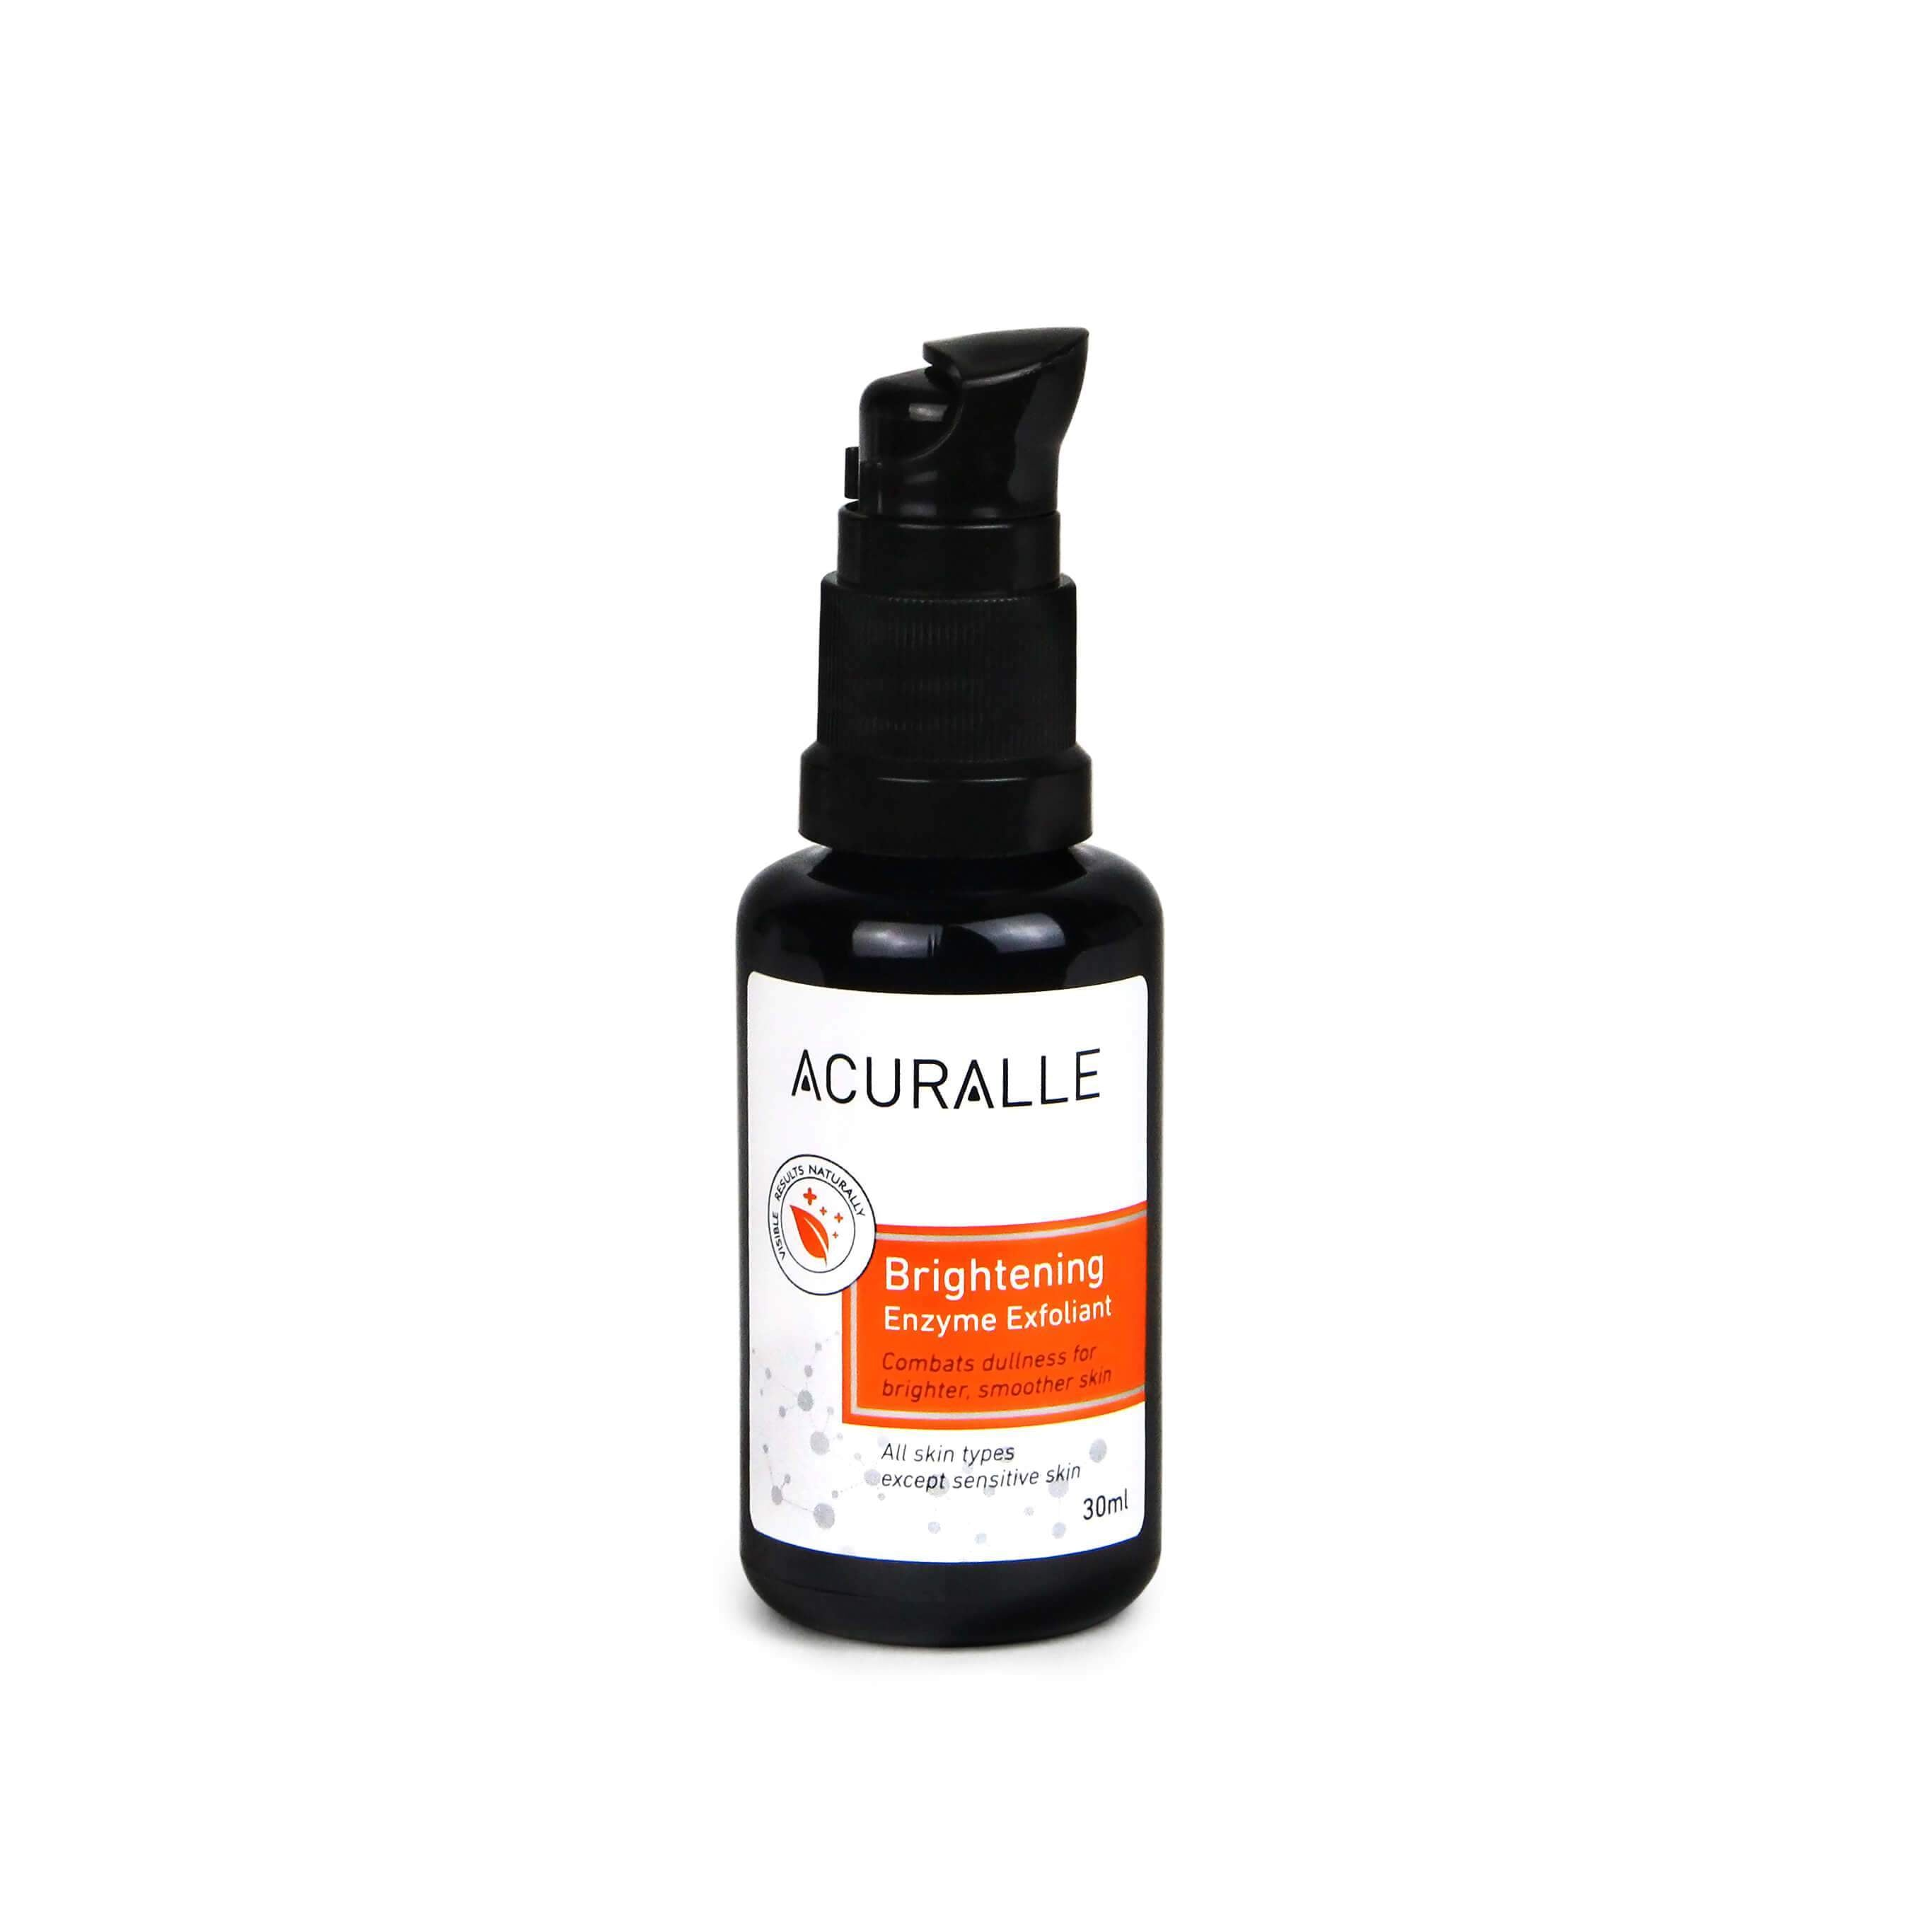 Acuralle Brightening Enzyme Exfoliant + Aloe 10ml